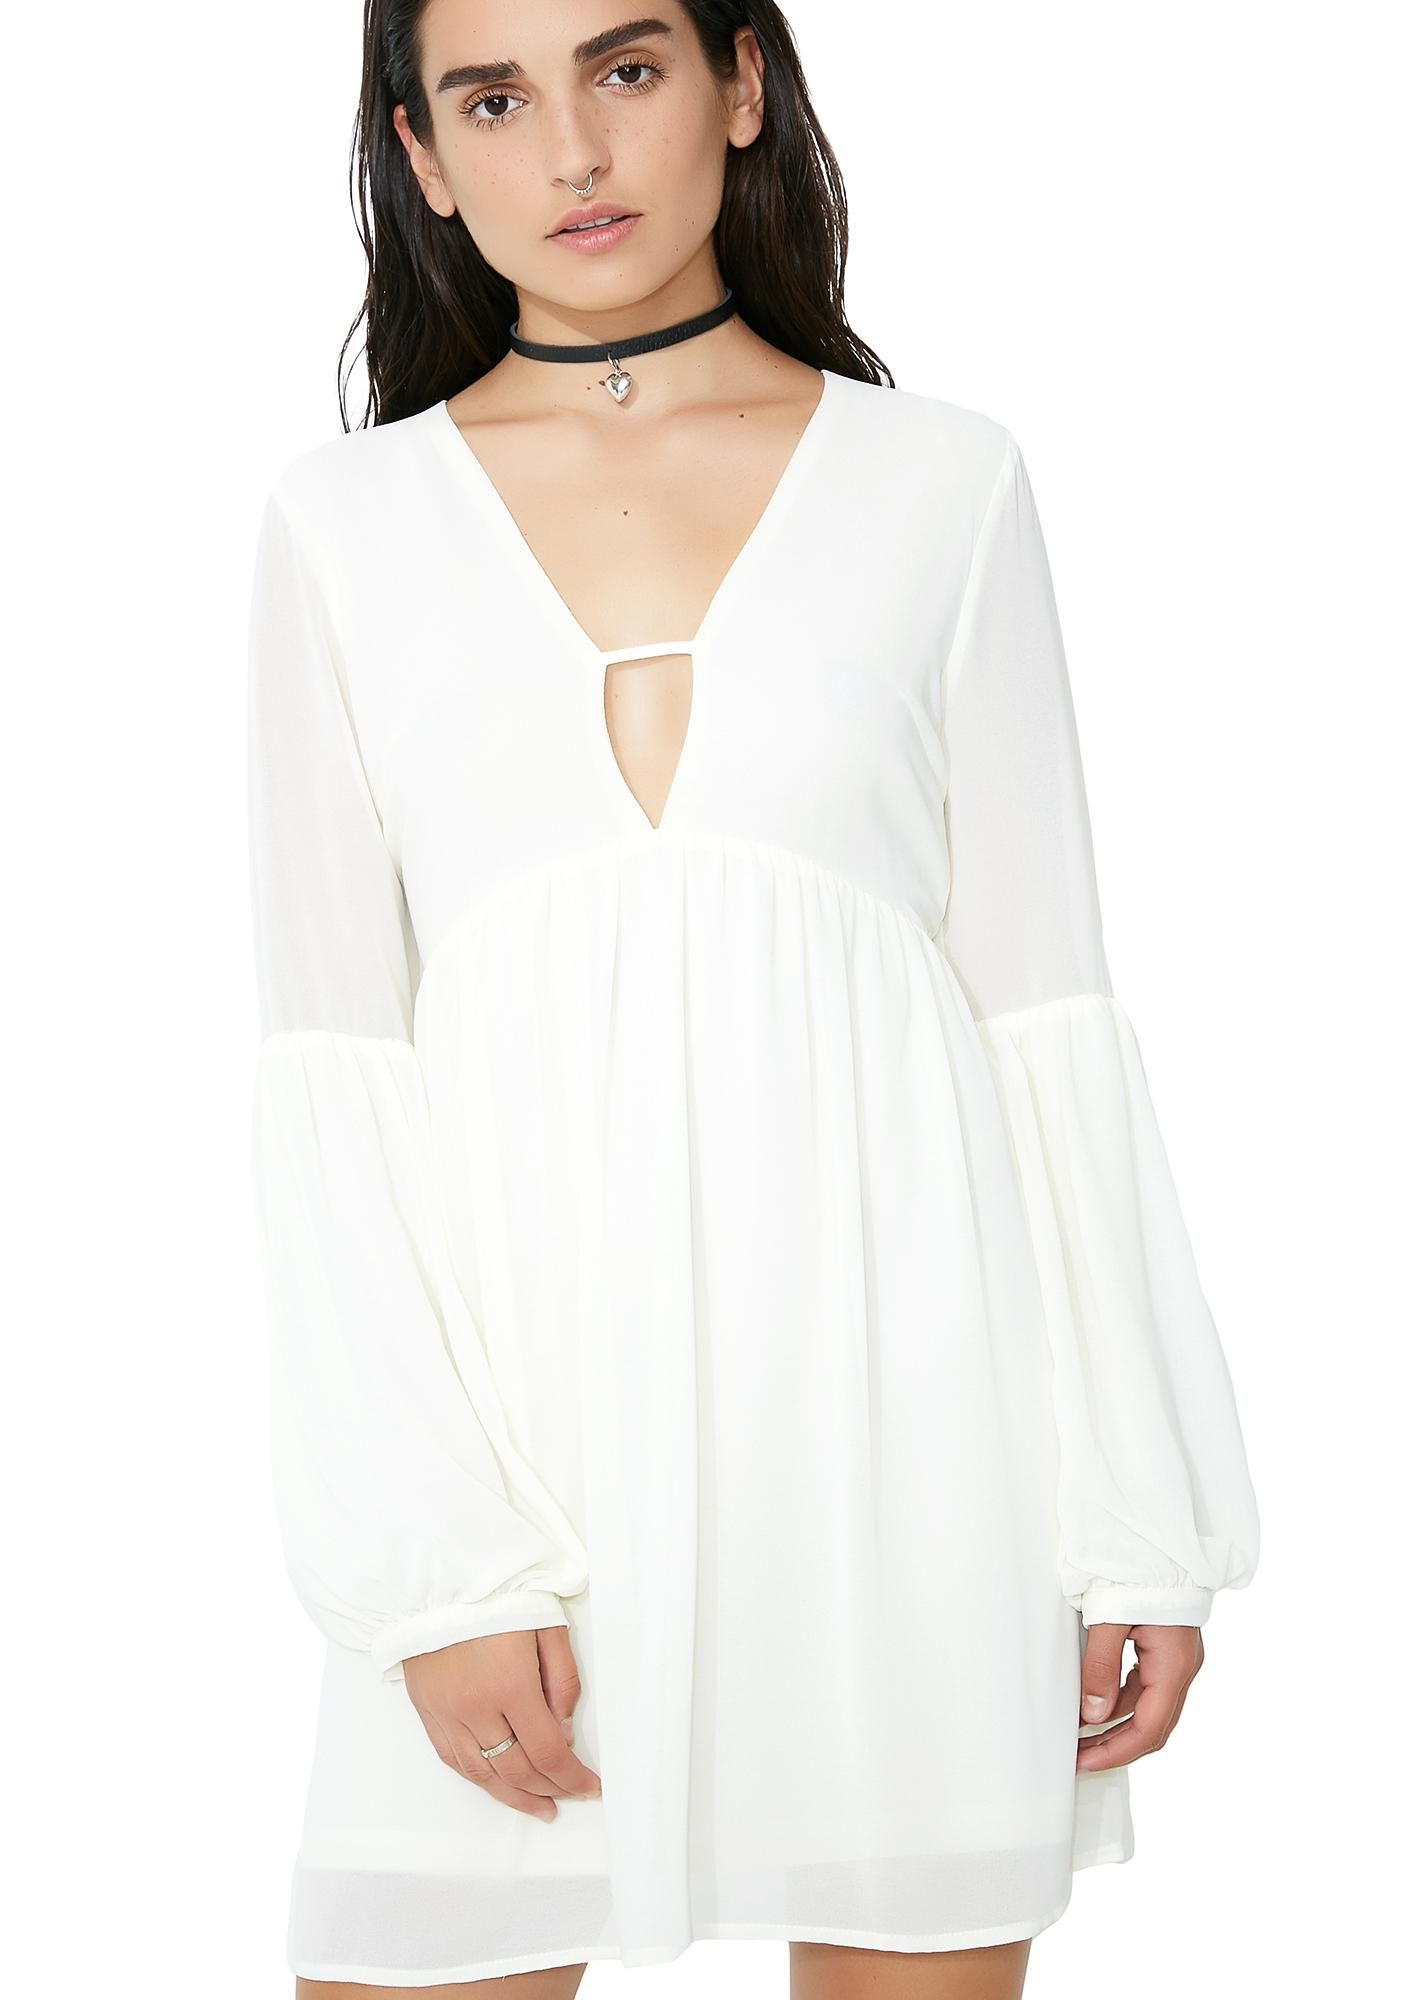 b0275bdda038 Glamorous Angel Face Flowy Dress cuz your beauty surpasses the rest. This white  flowy dress has a keyhole v neckline and loose sleeves.